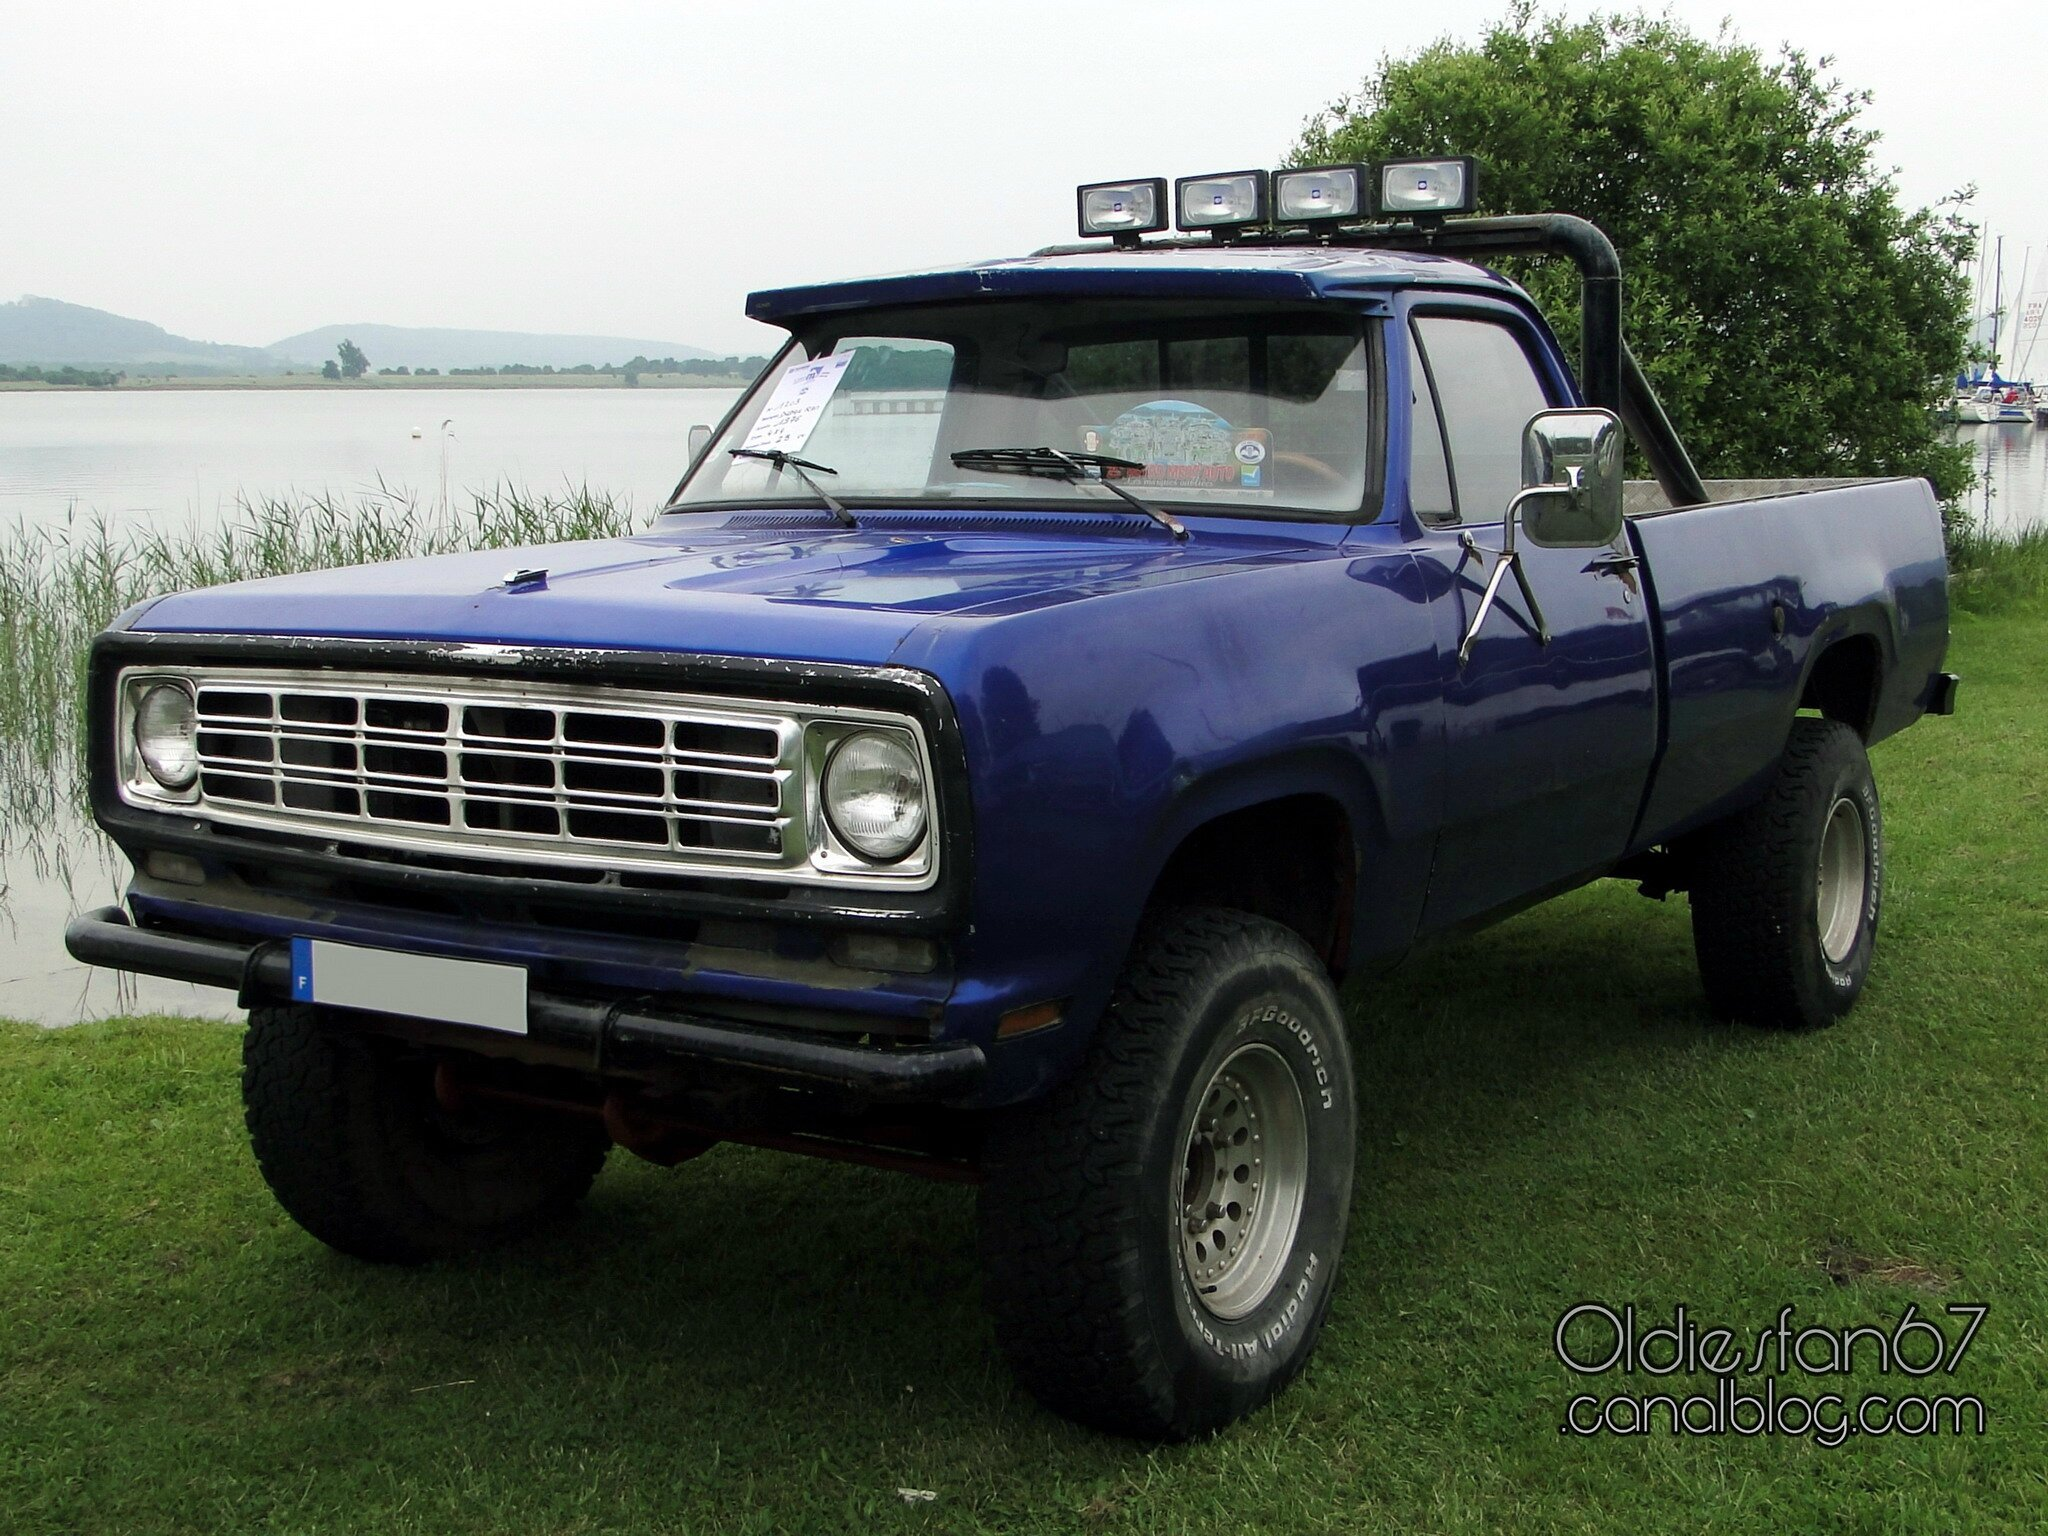 121599084677 as well Chevrolet El Camino Parts together with 1936 Ford Coupe Craigslist moreover 4870 1995 ford f350 crew cab furthermore 19778304. on 1979 toyota pickup 4x4